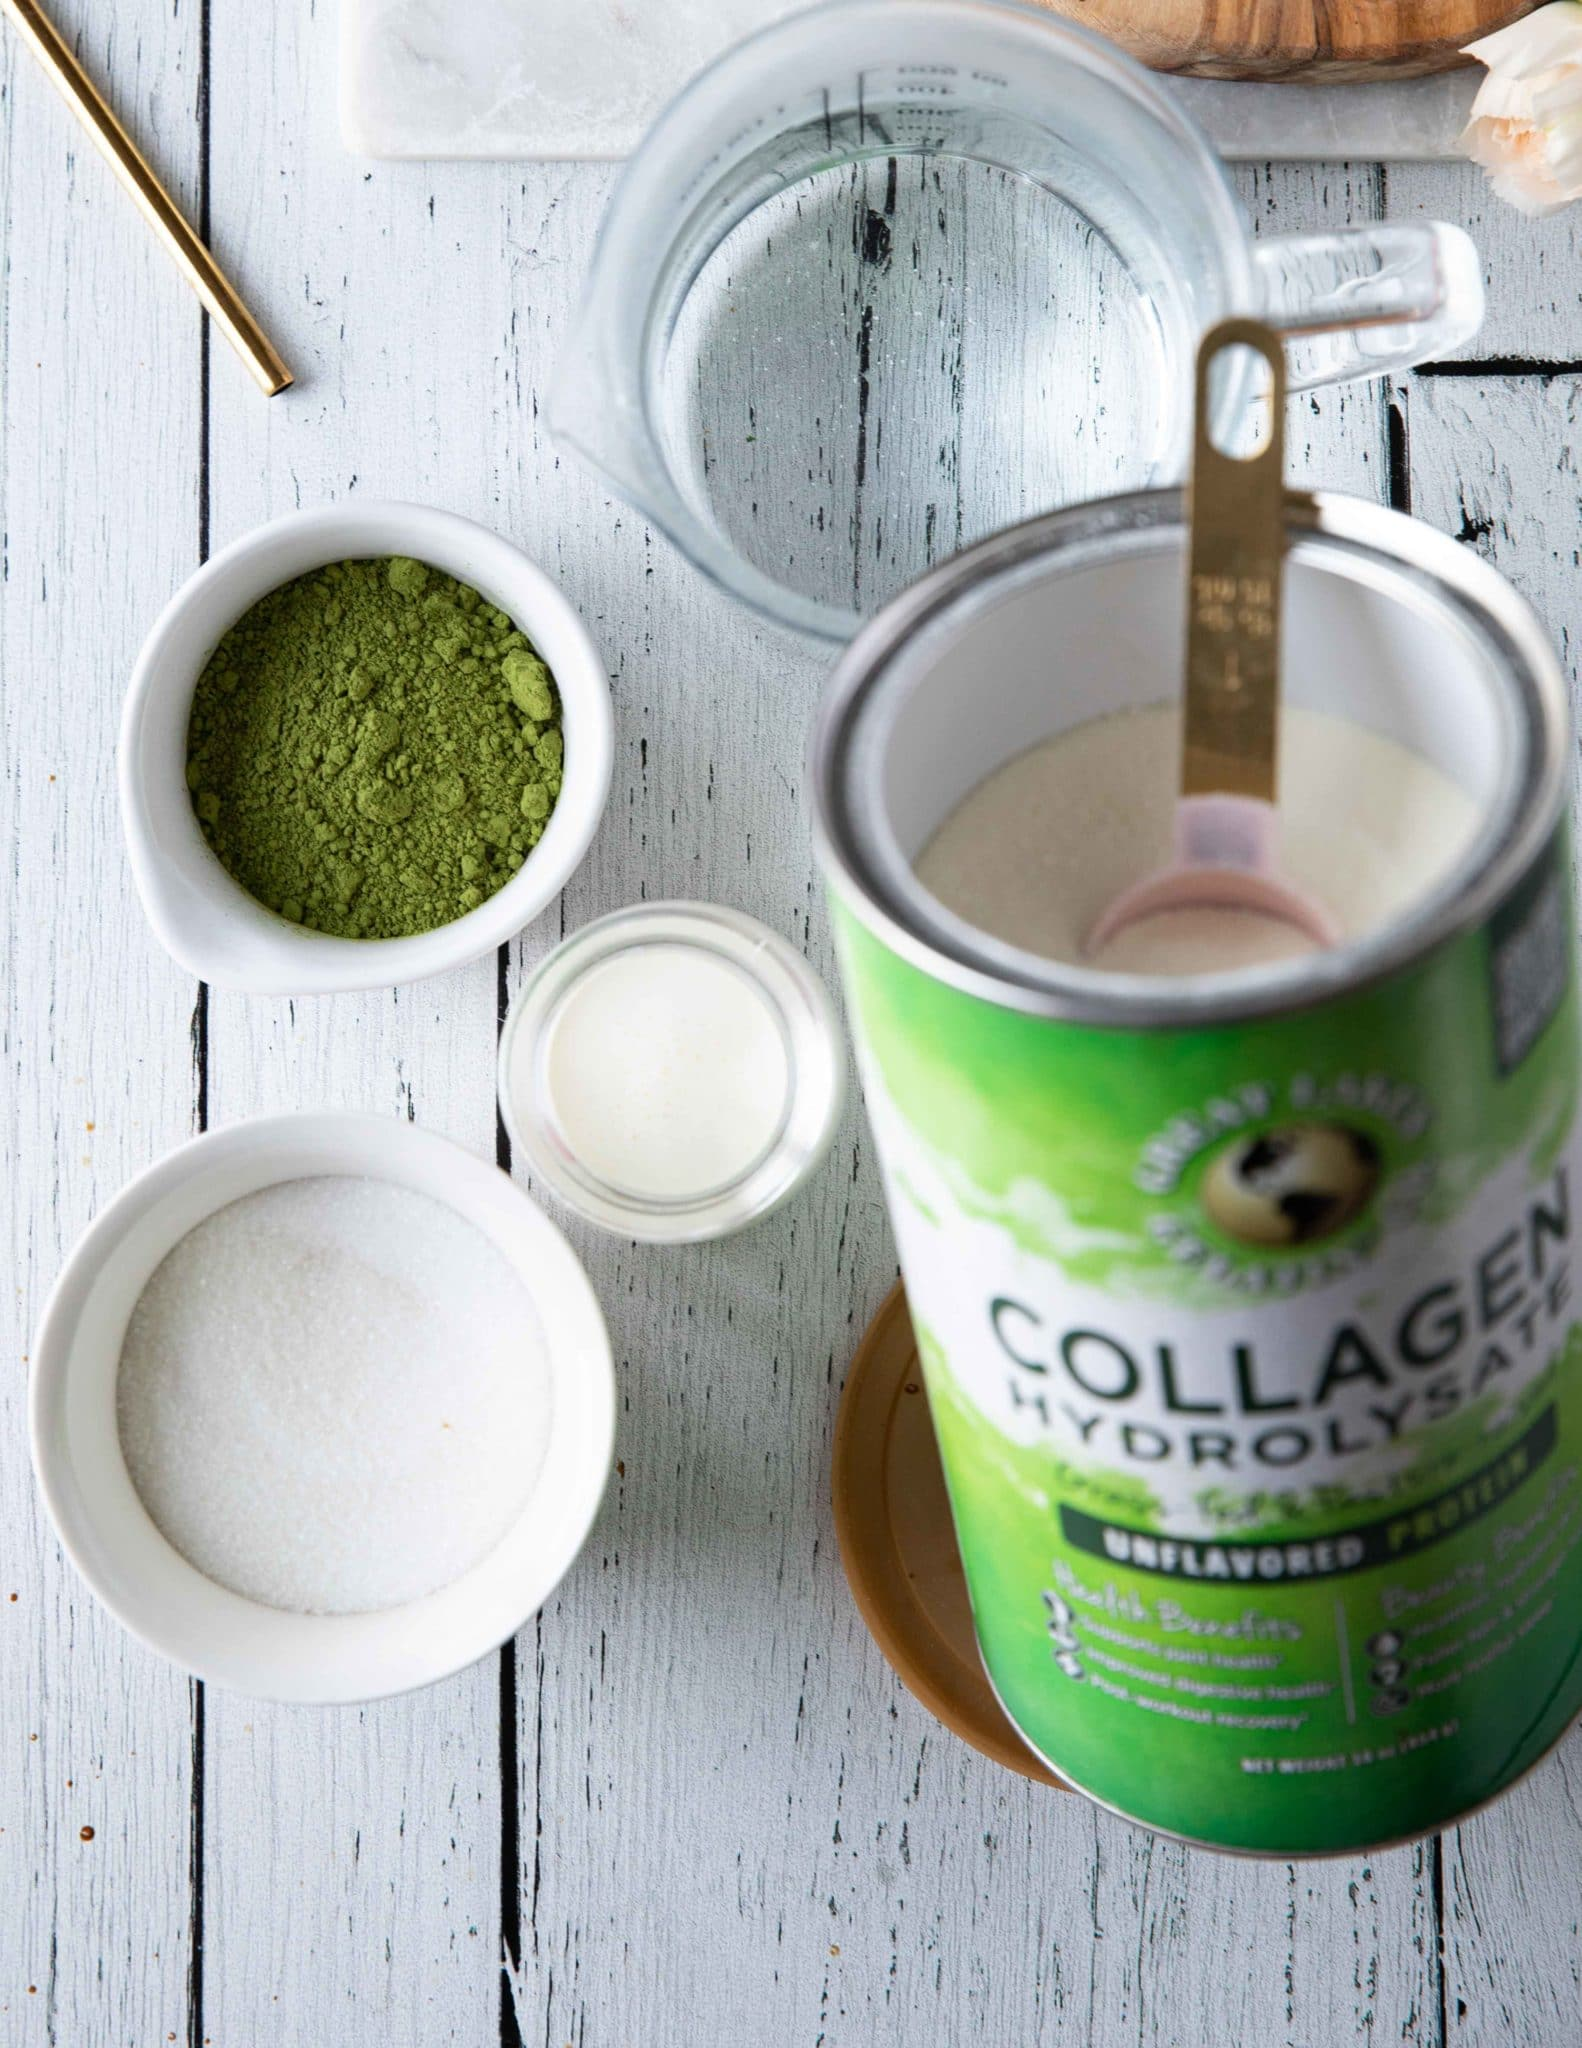 Ingredients for matcha dalgona with matcha powder, sugar, cream, collagen and an electric mixer